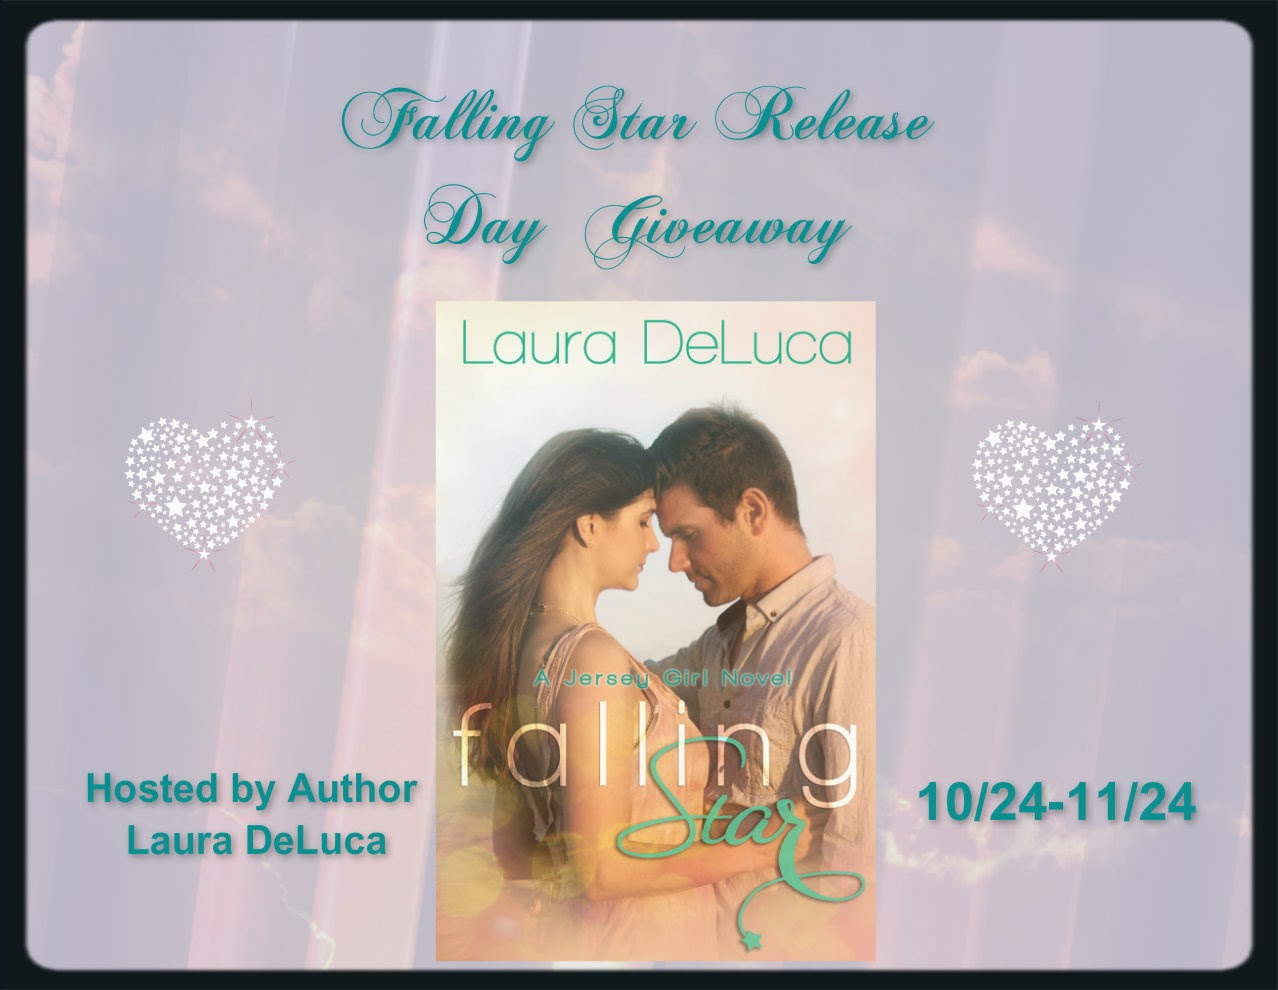 Falling Star by Laura DeLuca – Release Day Giveaway